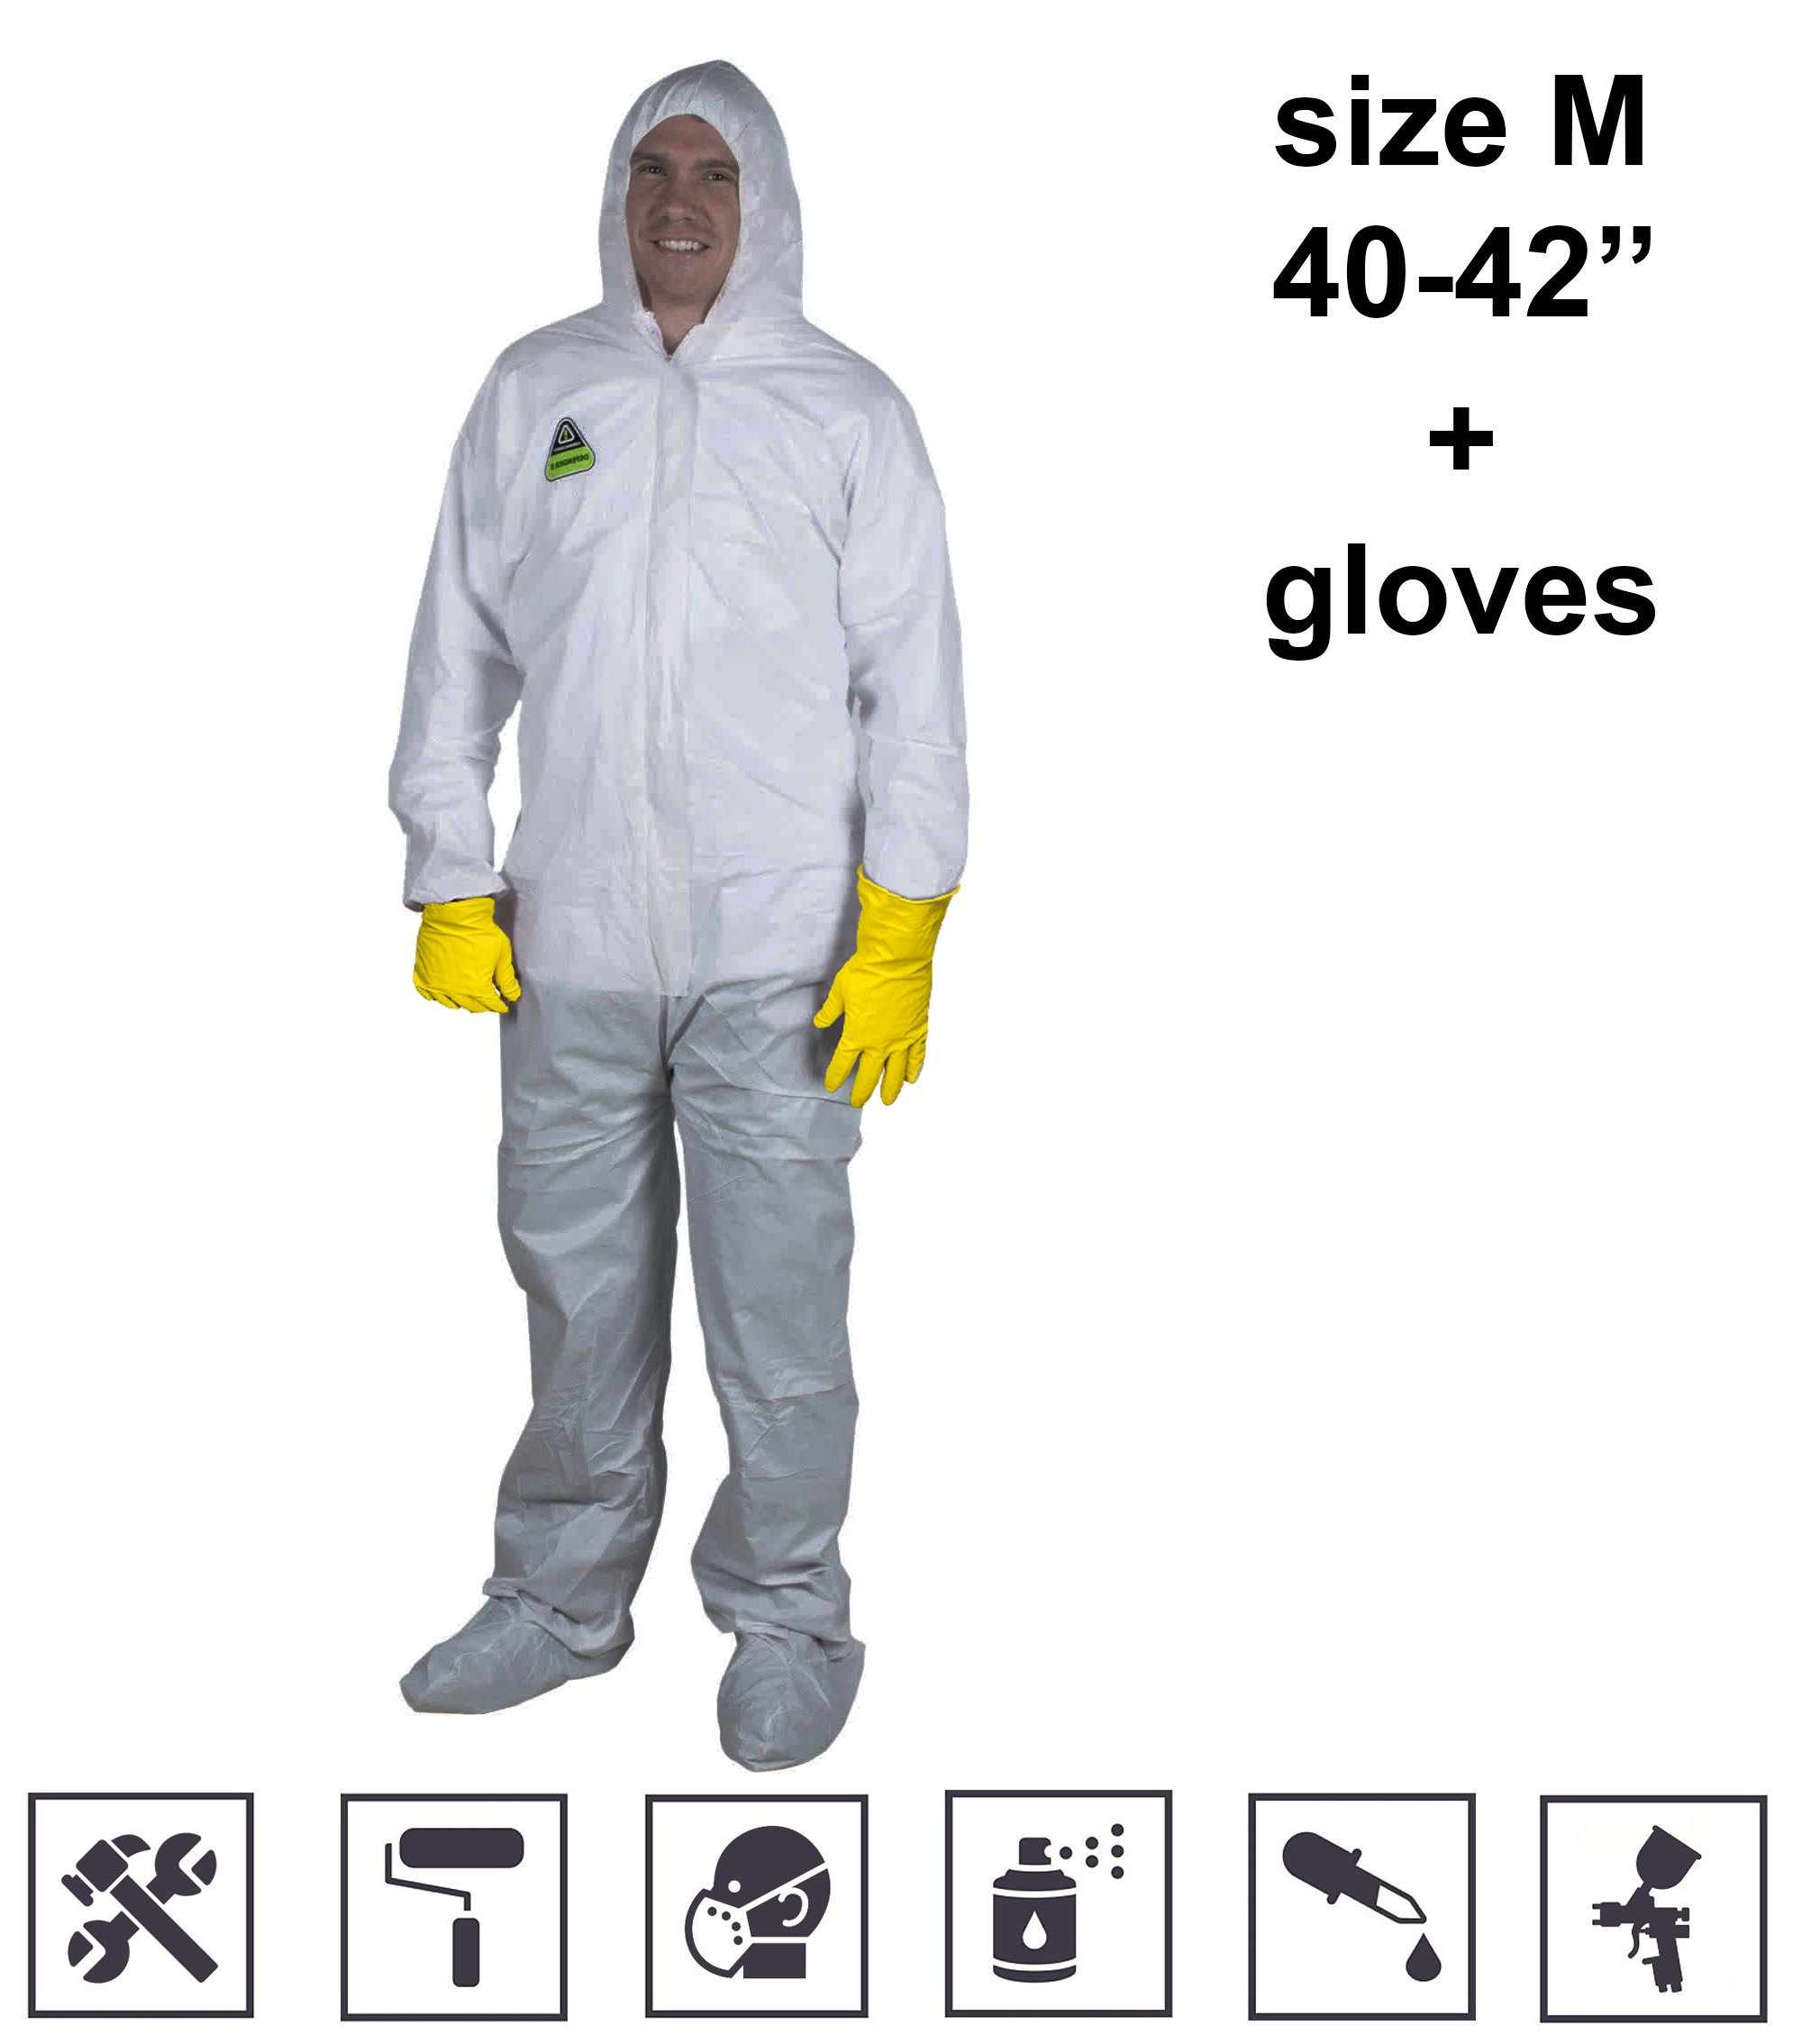 Coveralls for Men Women Disposable Overall Unionalls White Microporous Anti-Static Anti Spray Painting Paint use Dust Mold Mildew Protection with Front Zipper Hood Unisex Size M if Your Wear 40-42